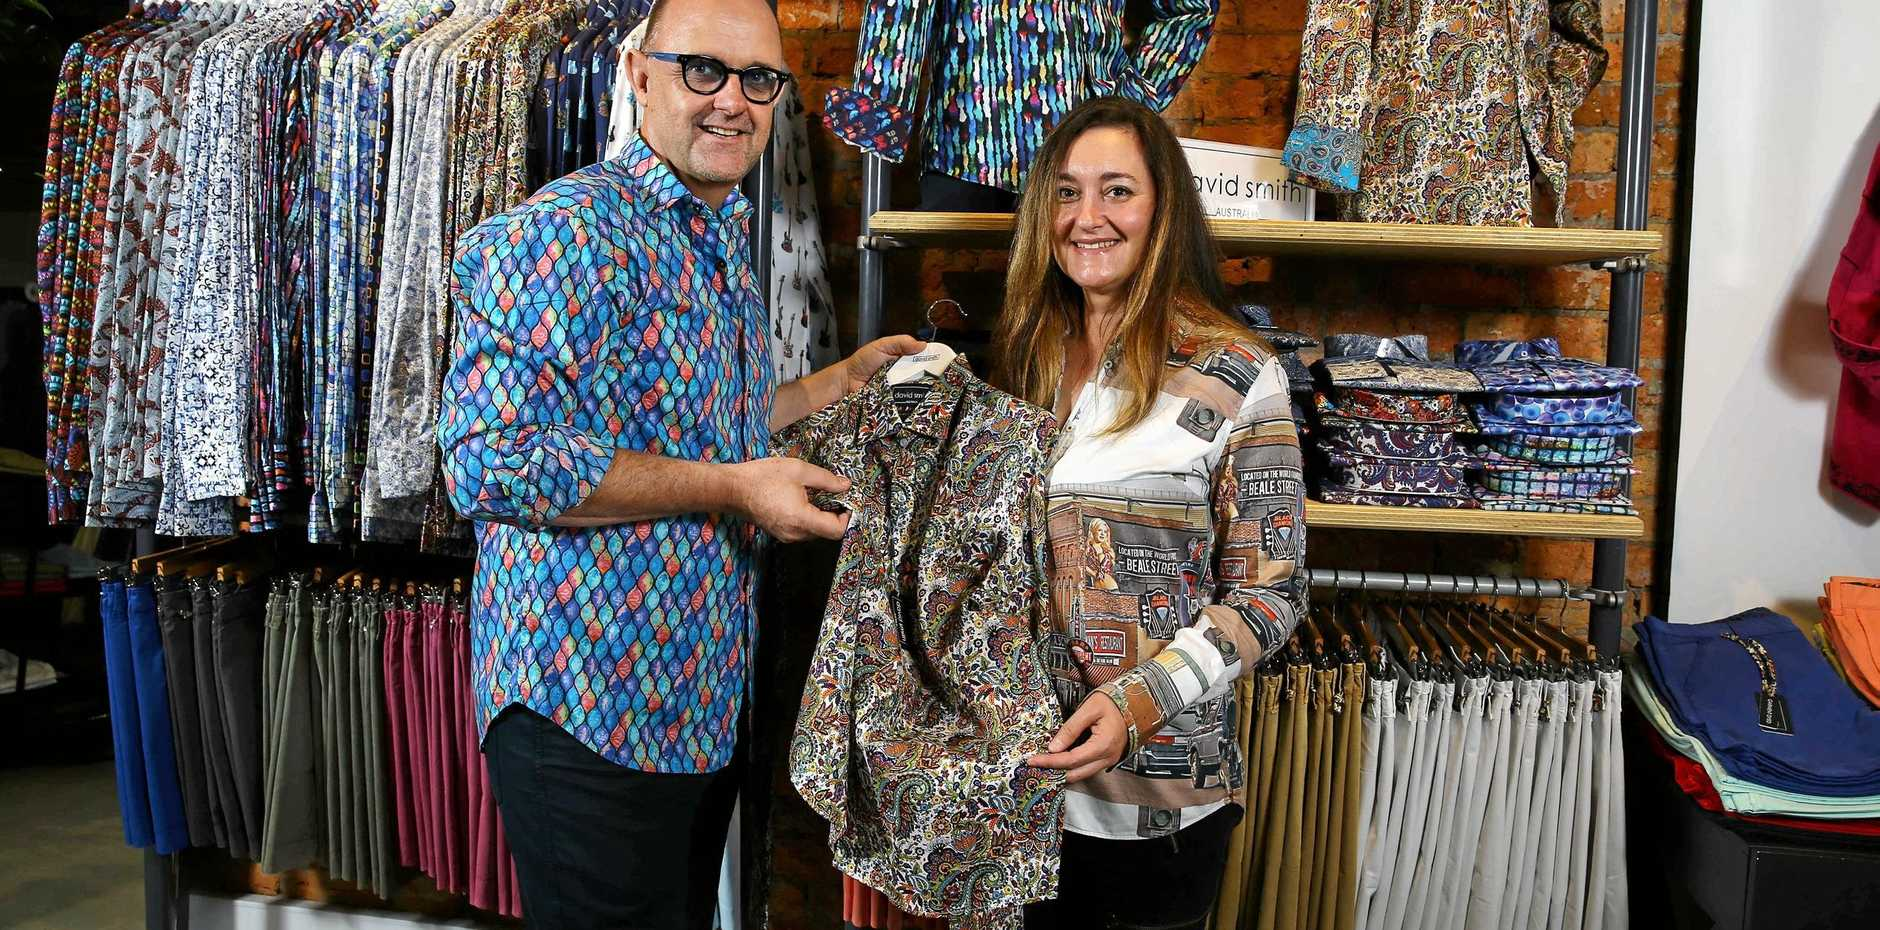 David Smith is a successful Gold Coast-based designer who has built an international business specialising in his trademark bright and colourful shirts, David is pictured with his wife and business partner Taryn Smith.